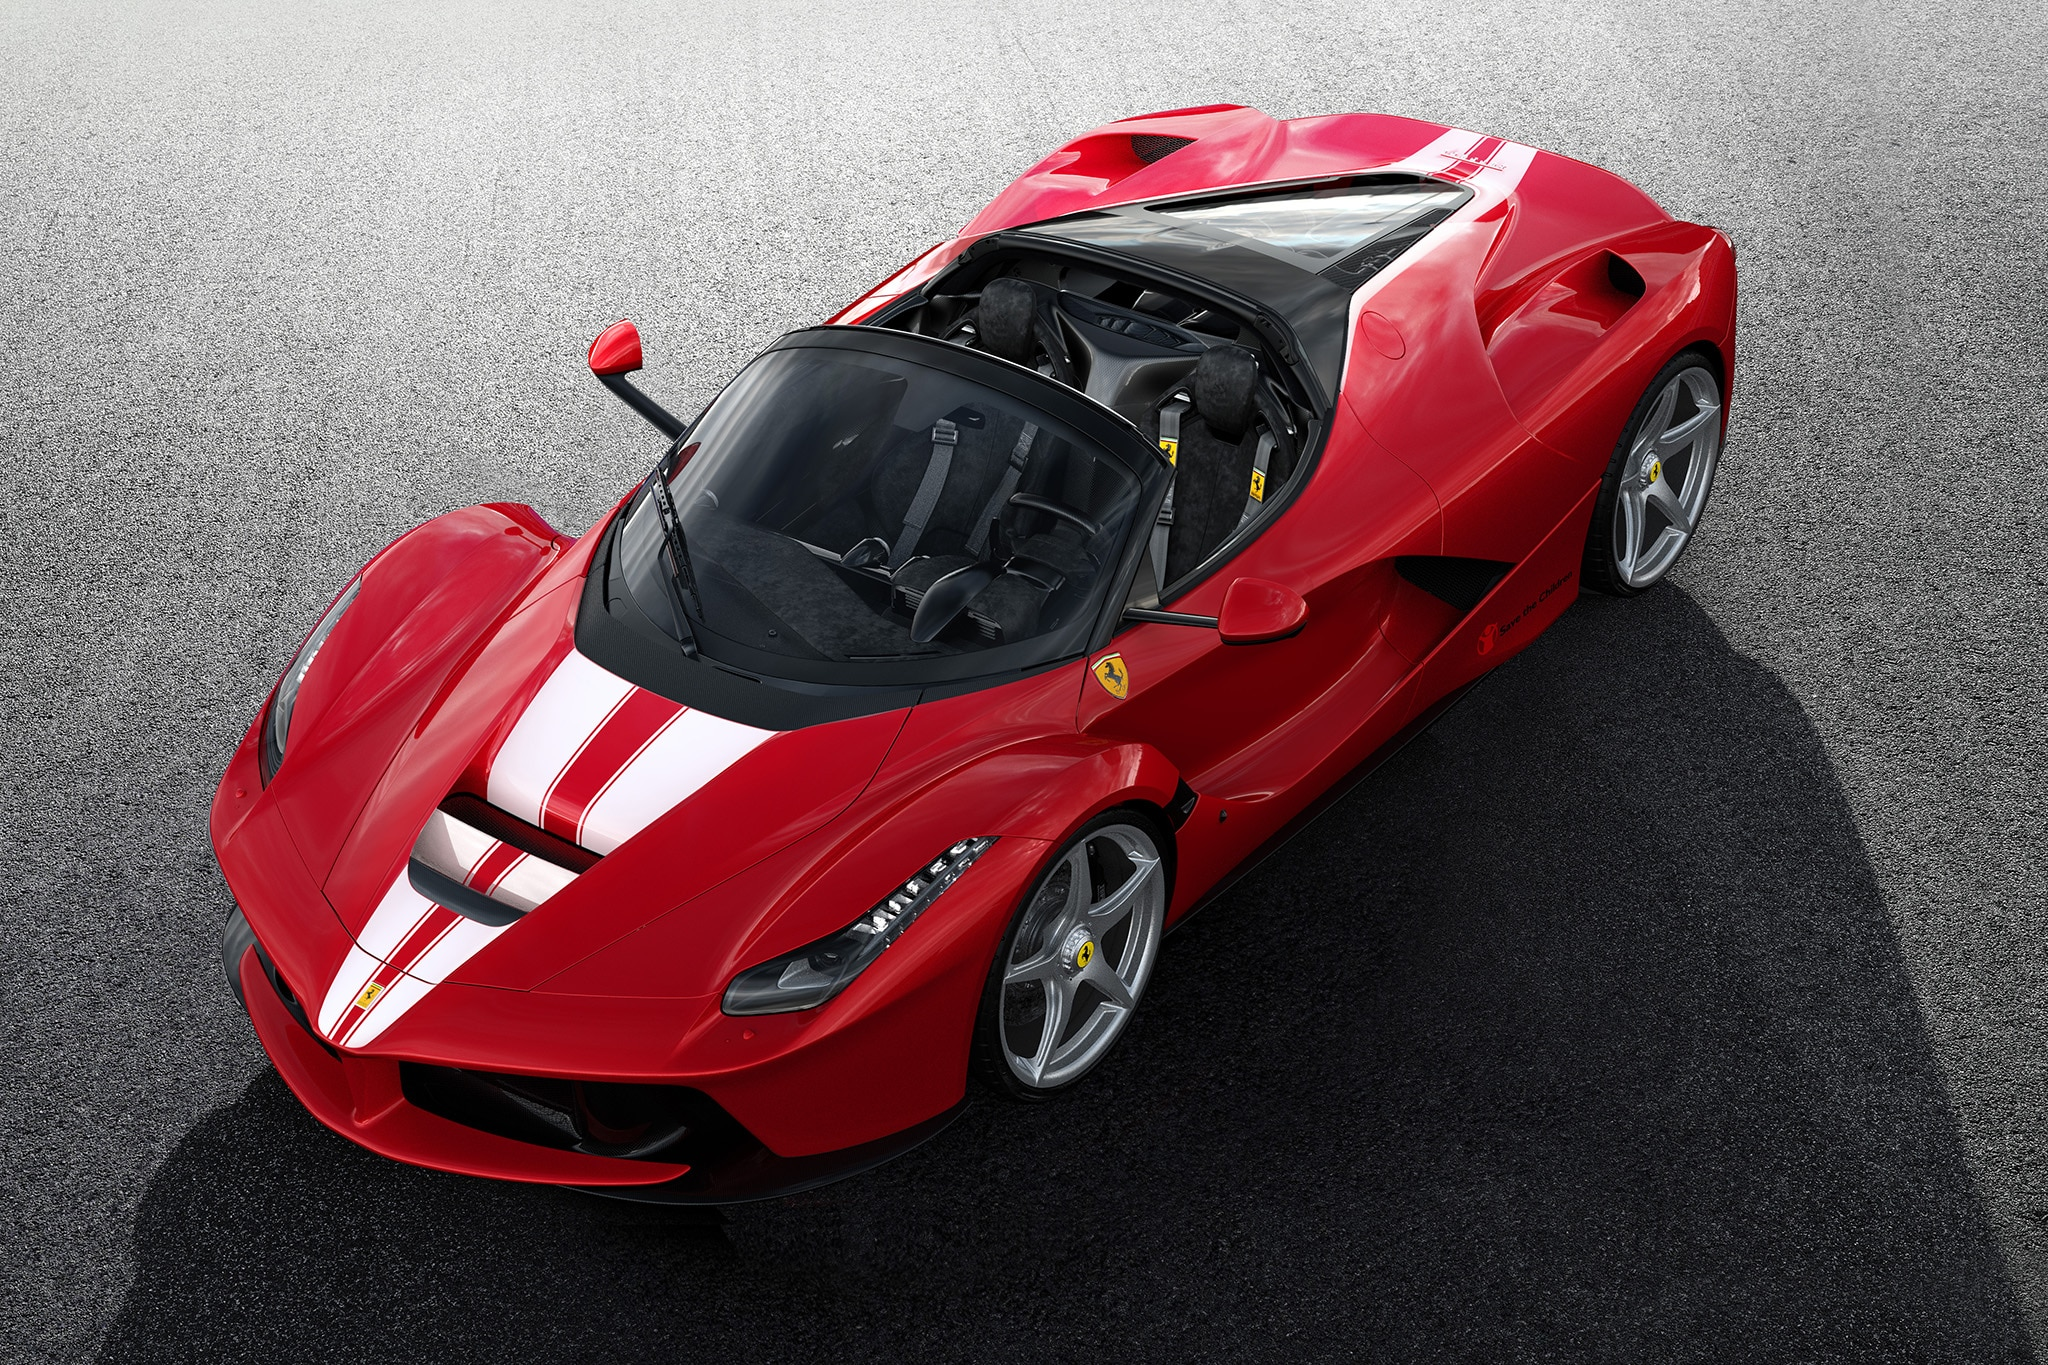 2017 ferrari laferrari aperta sells for $10 million automobile1 2